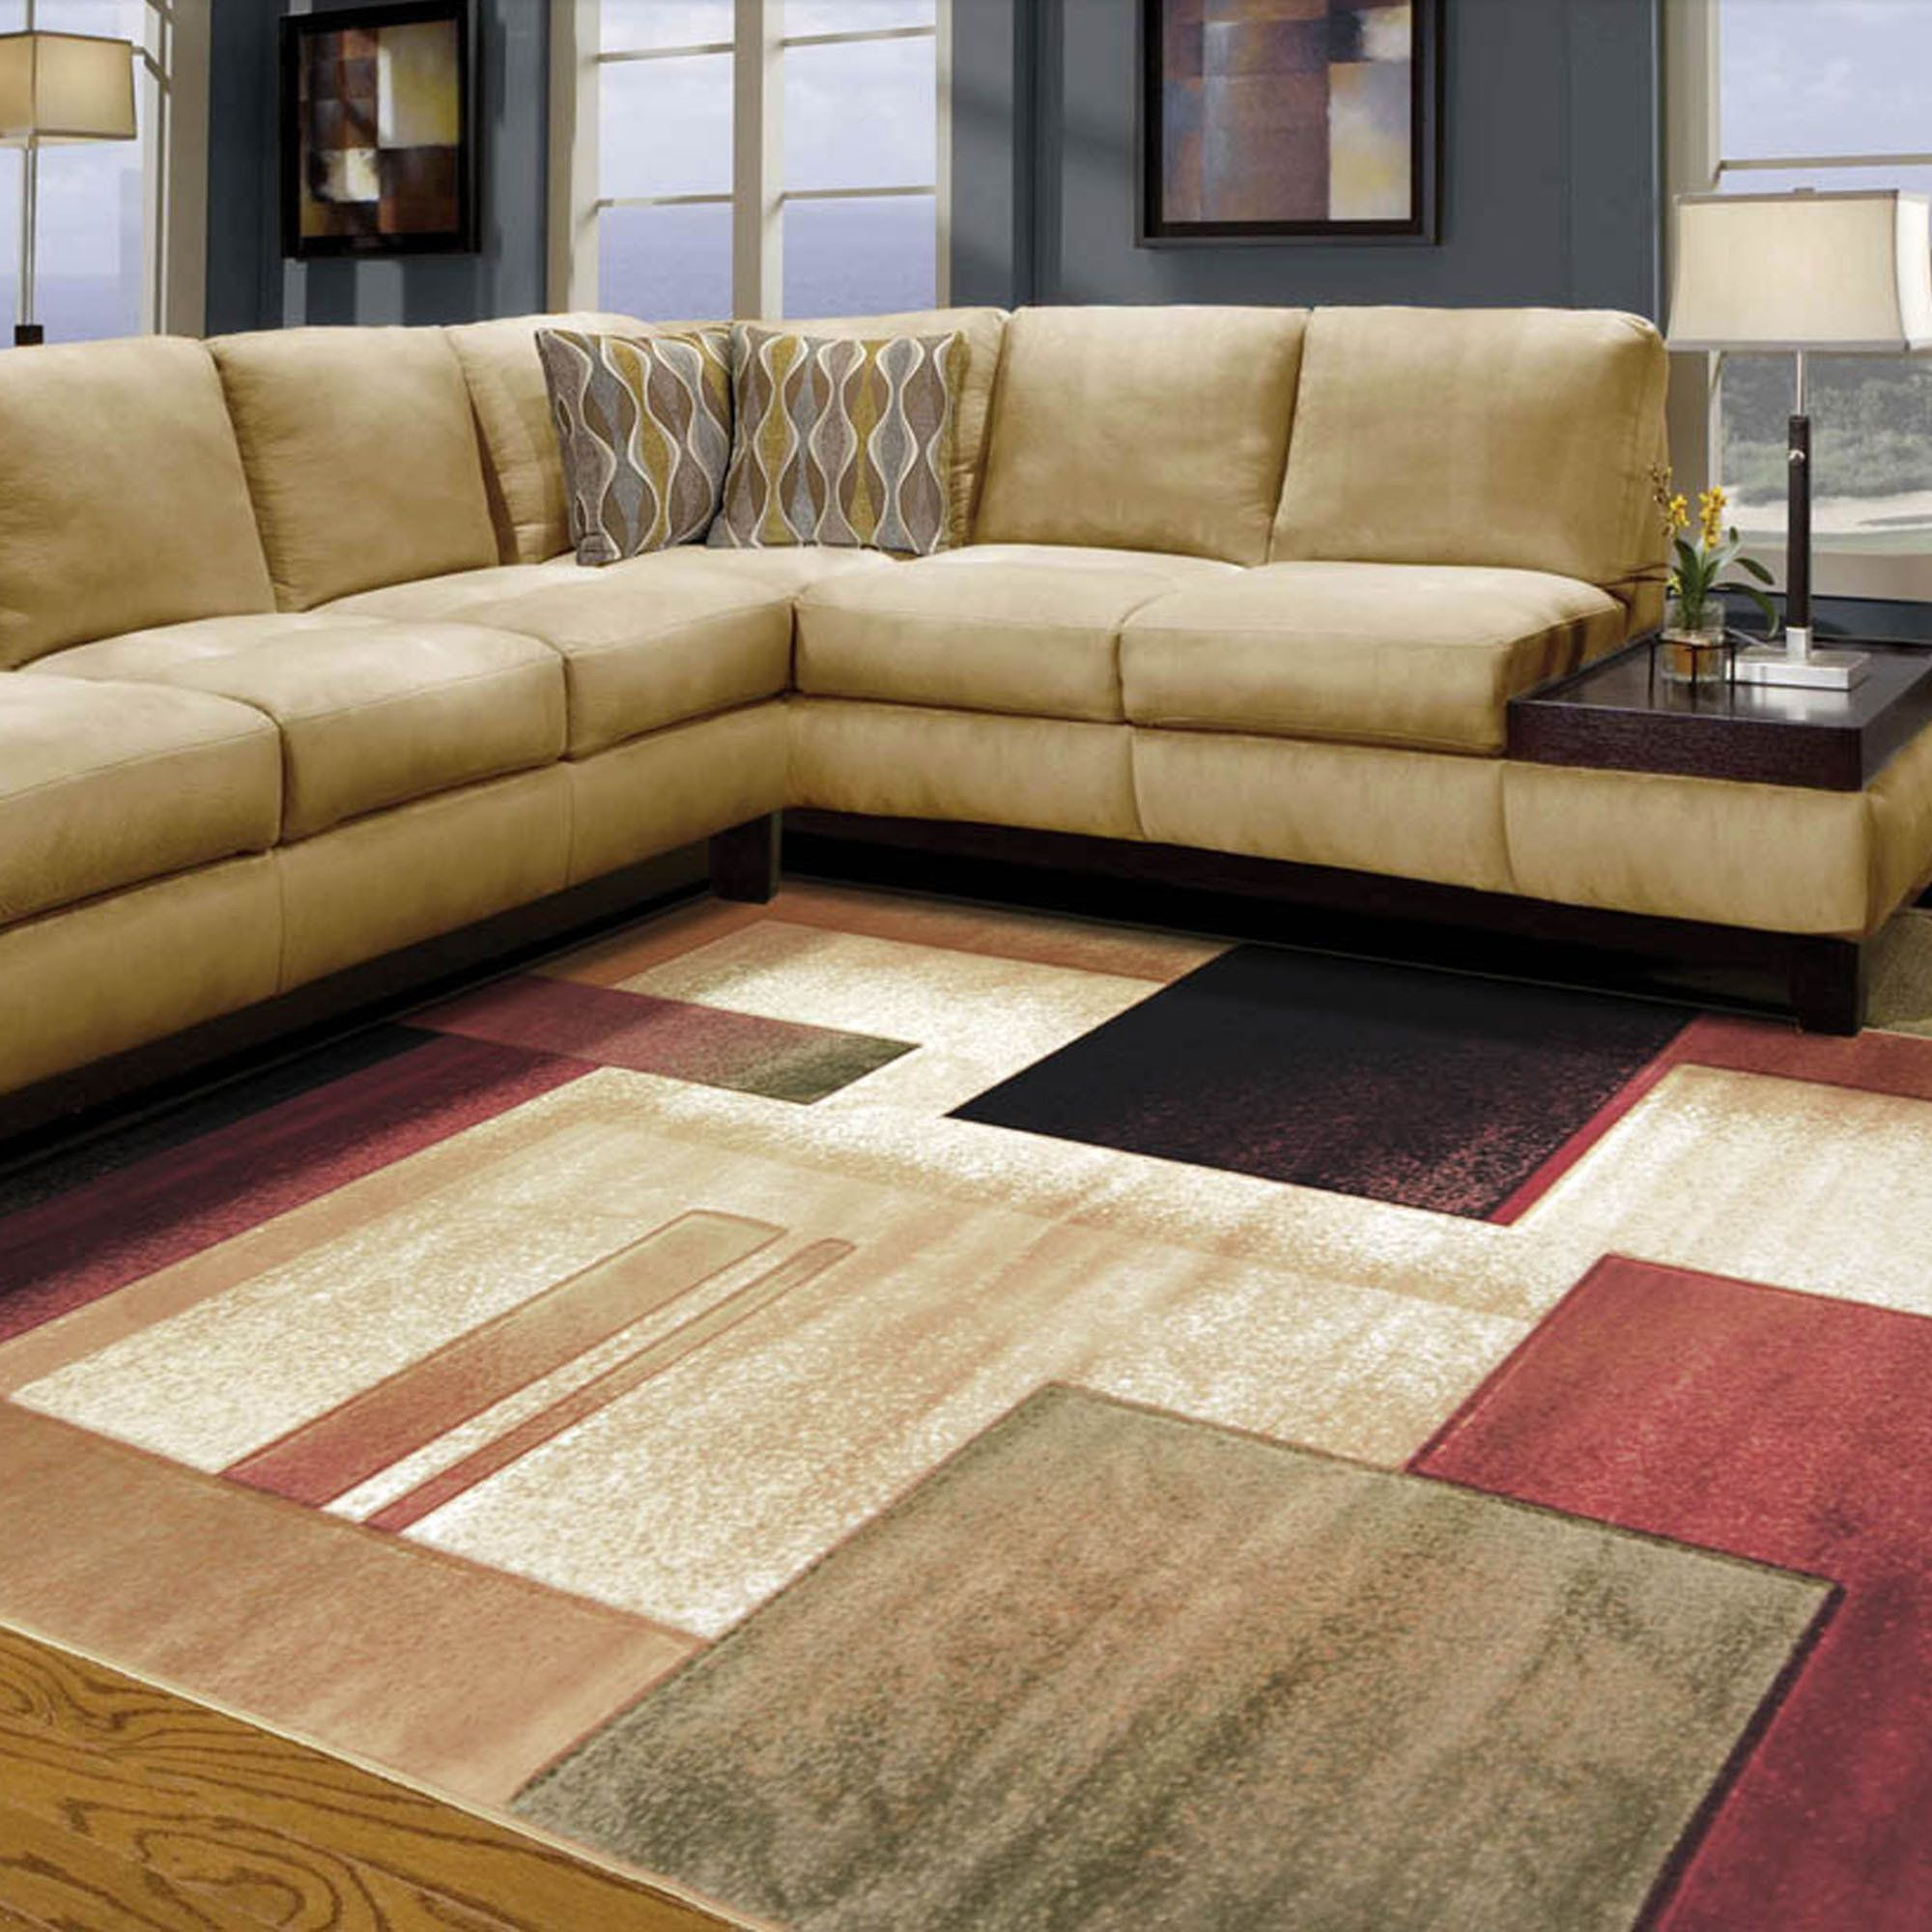 modern composition area rugs  modern house interior design and  - modern composition area rugs  modern house interior design and modern rugs